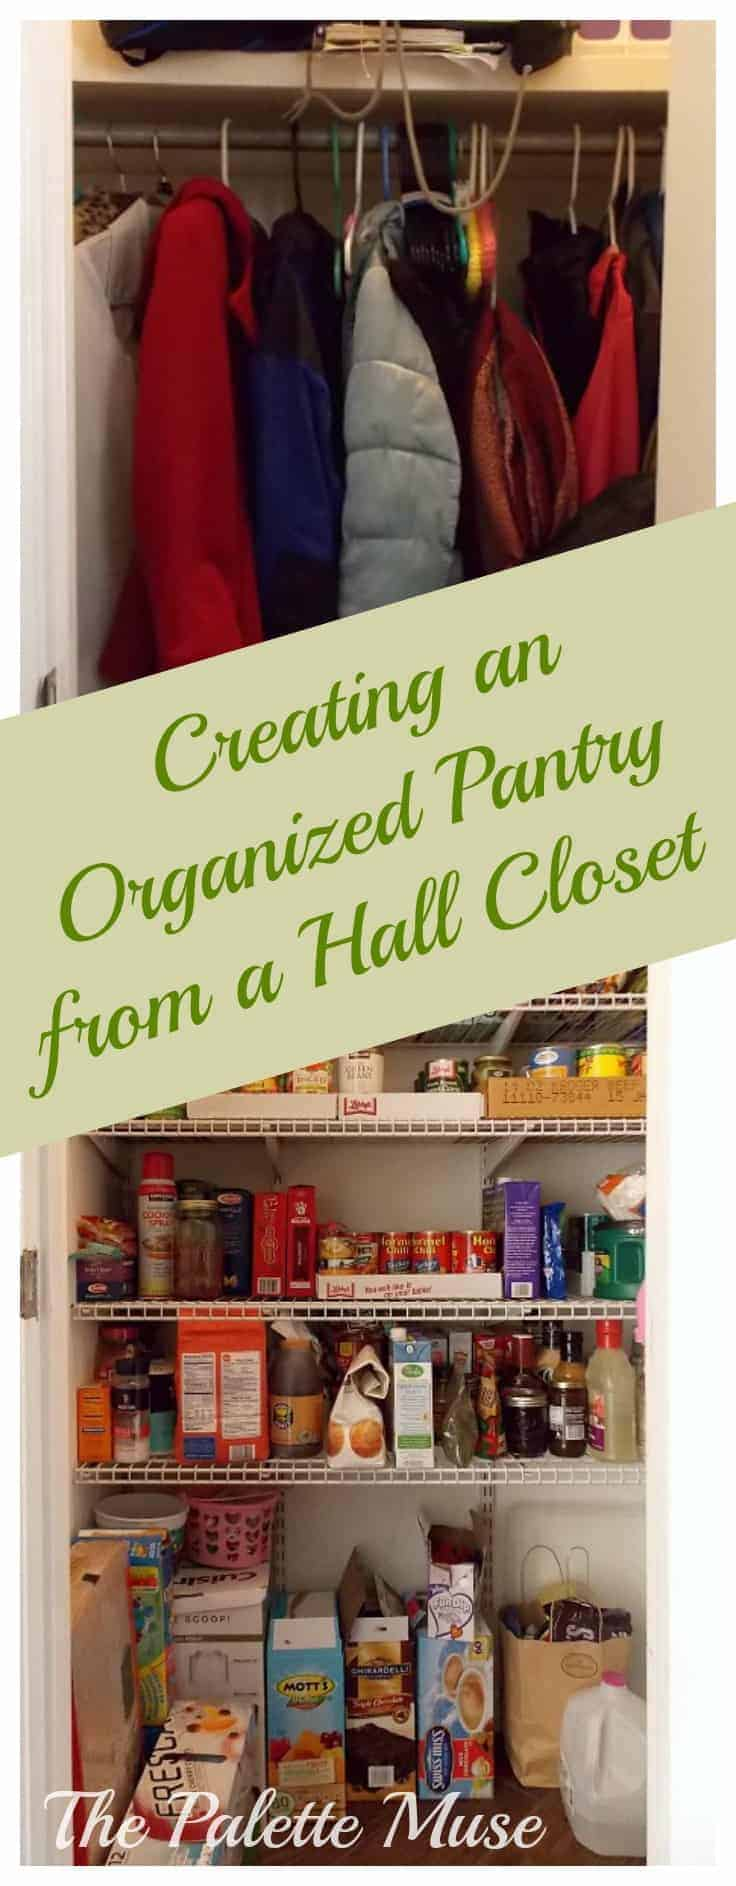 Creating An Organized Pantry From A Hall Closet The